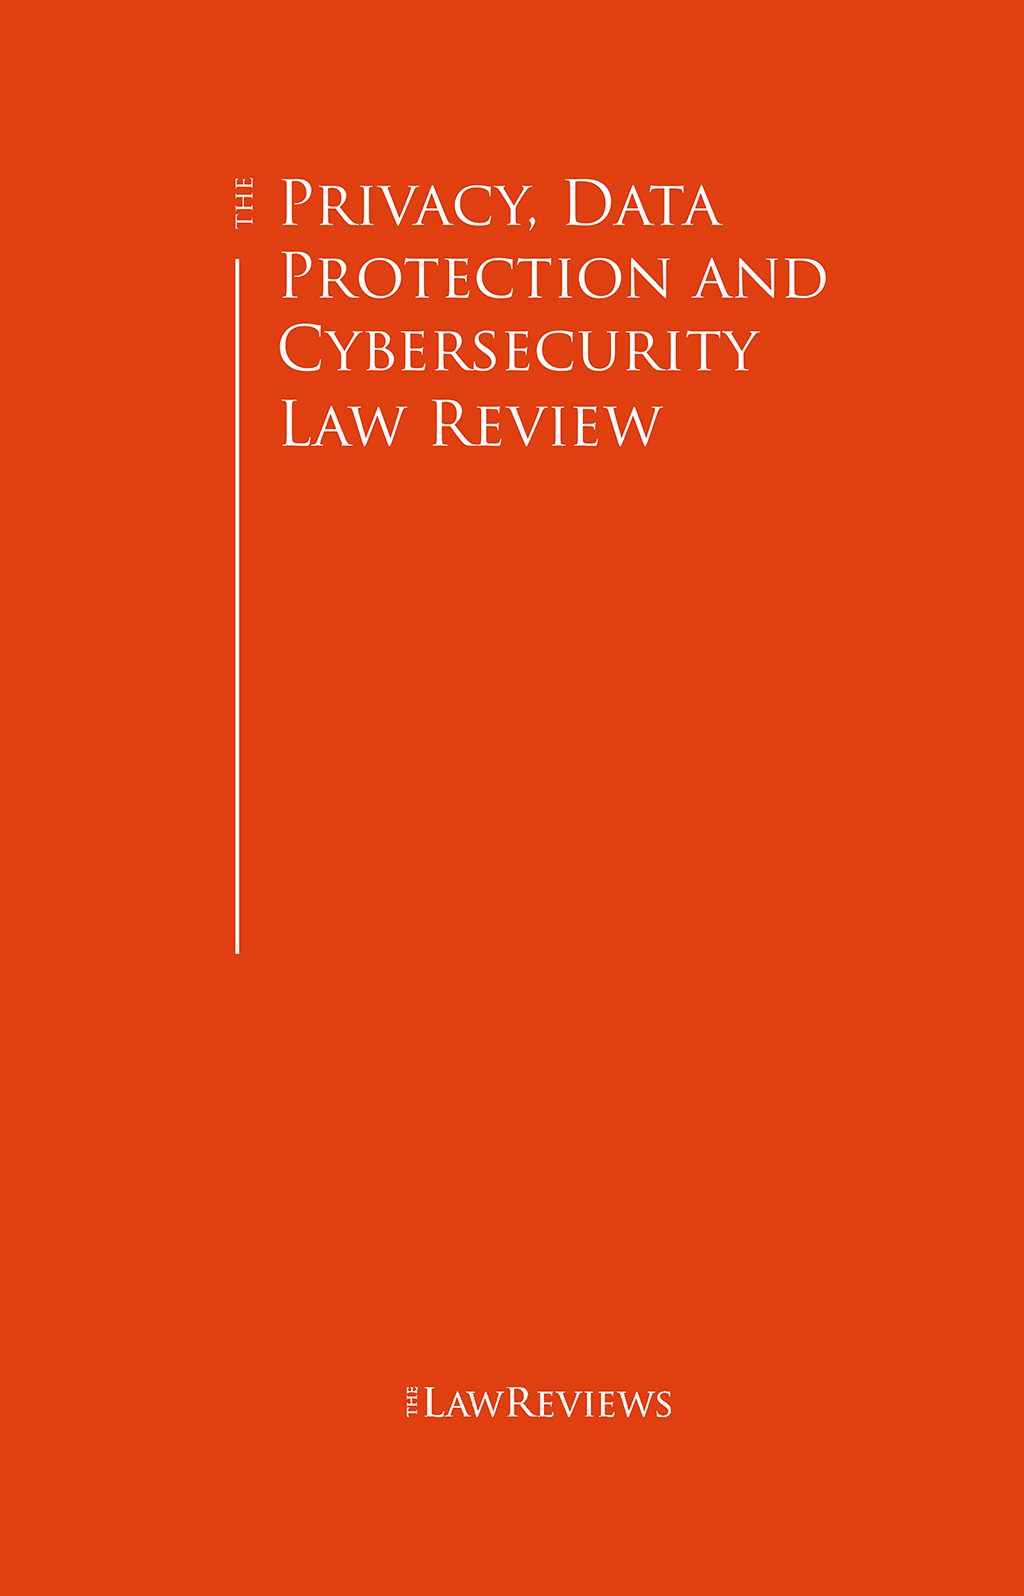 The Privacy, Data Protection and Cybersecurity Law Review